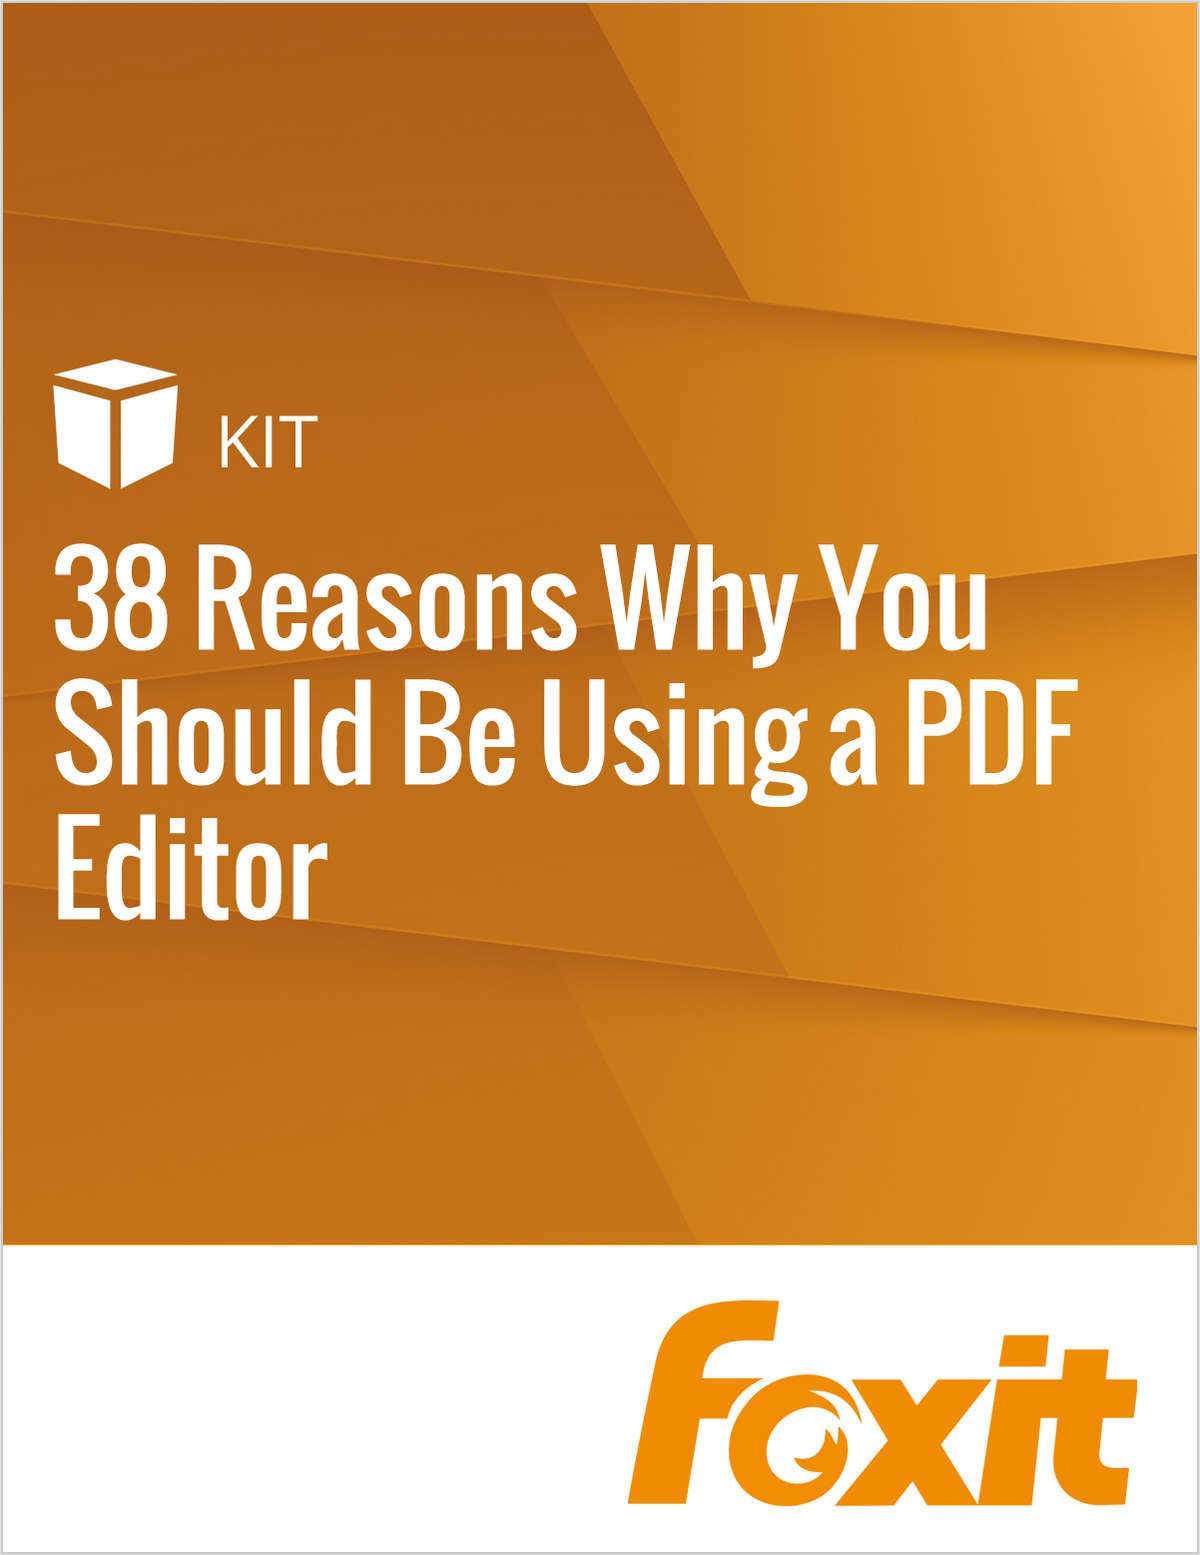 38 Reasons Why You Should Be Using a PDF Editor